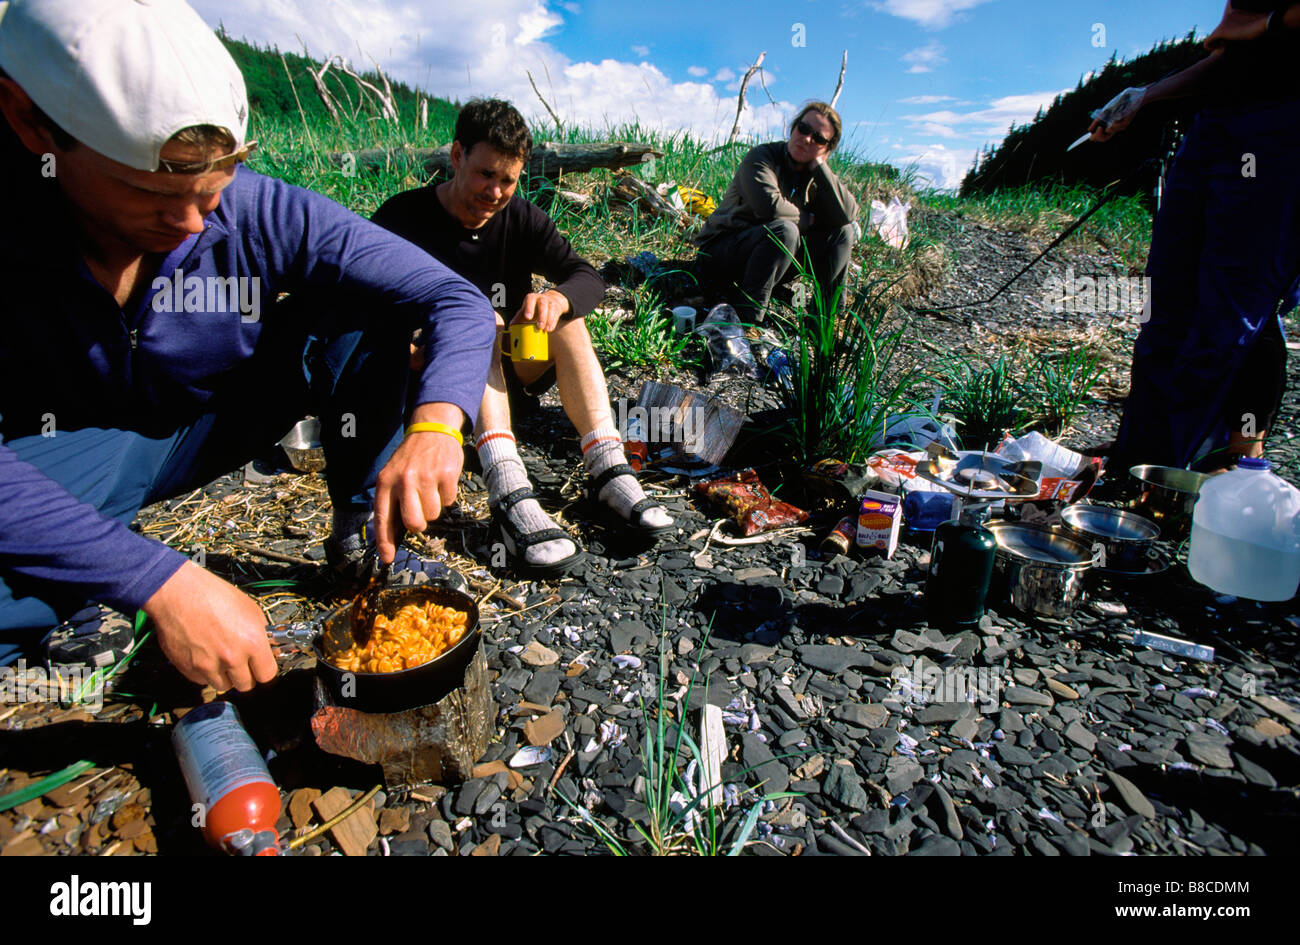 Cooking Dinner, Seduction Point, Haines, Alaska - Stock Image